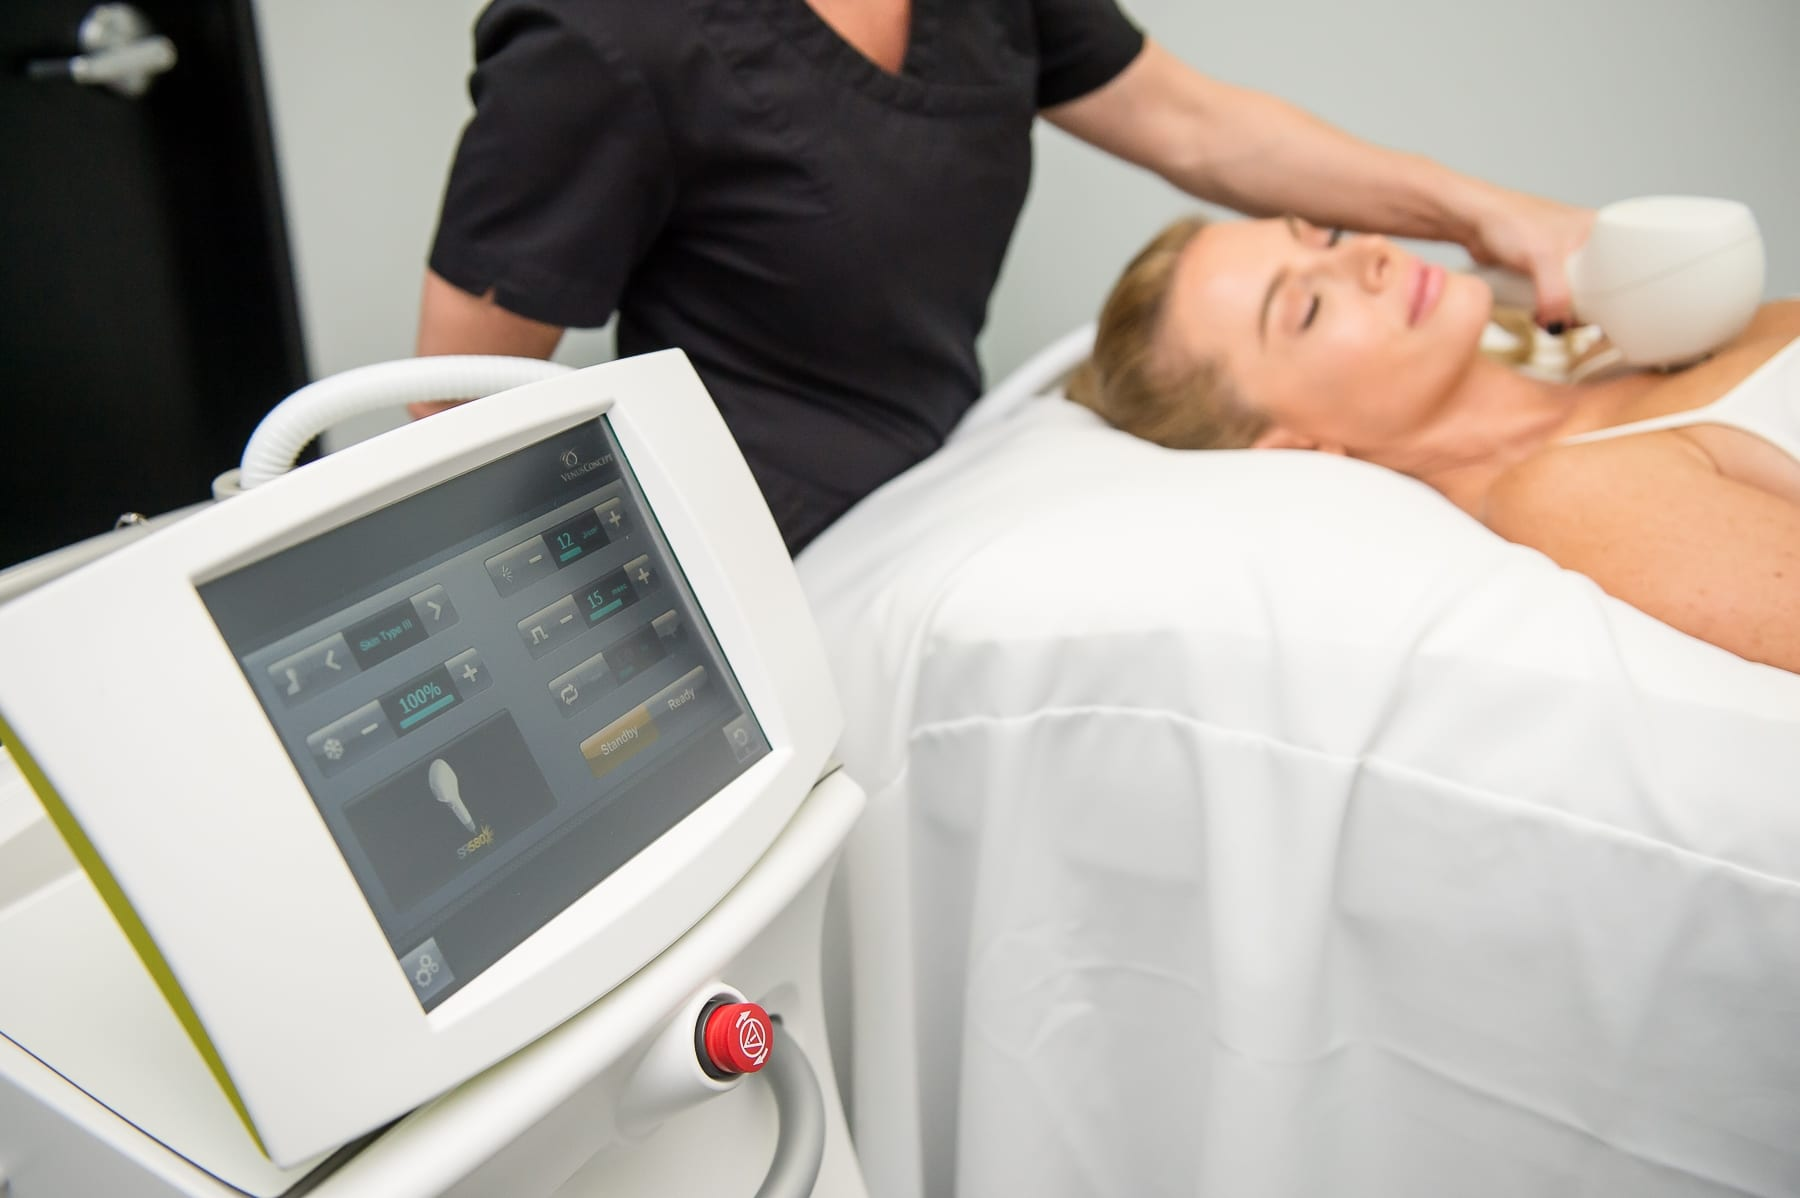 Versa Treatment Image